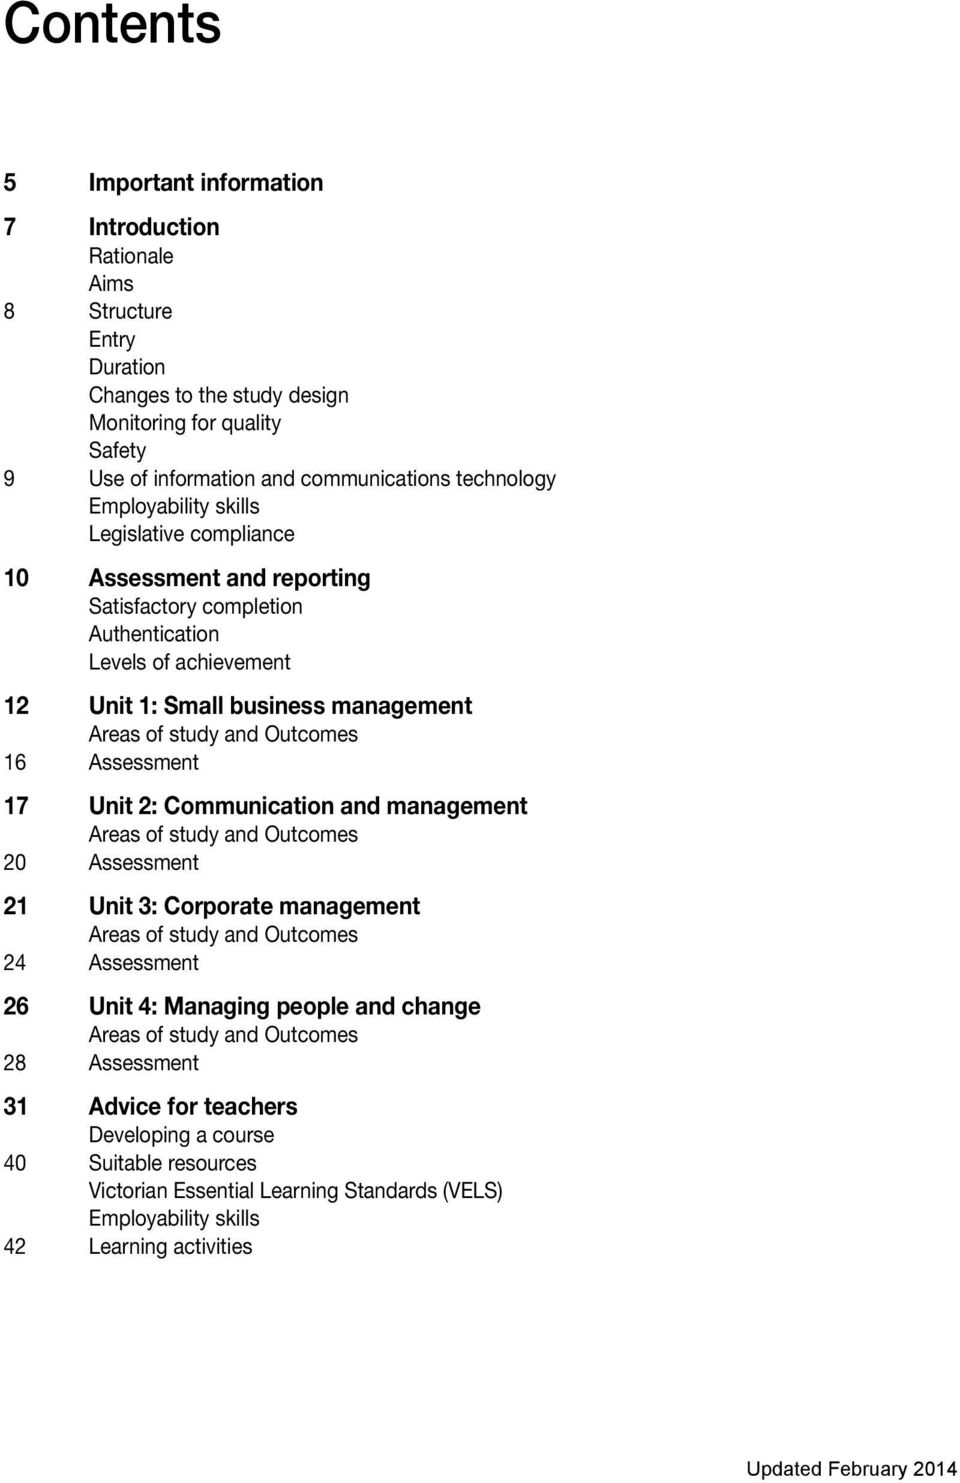 16 Assessment 17 Unit 2: Communication and management Areas of study and Outcomes 20 Assessment 21 Unit 3: Corporate management Areas of study and Outcomes 24 Assessment 26 Unit 4: Managing people